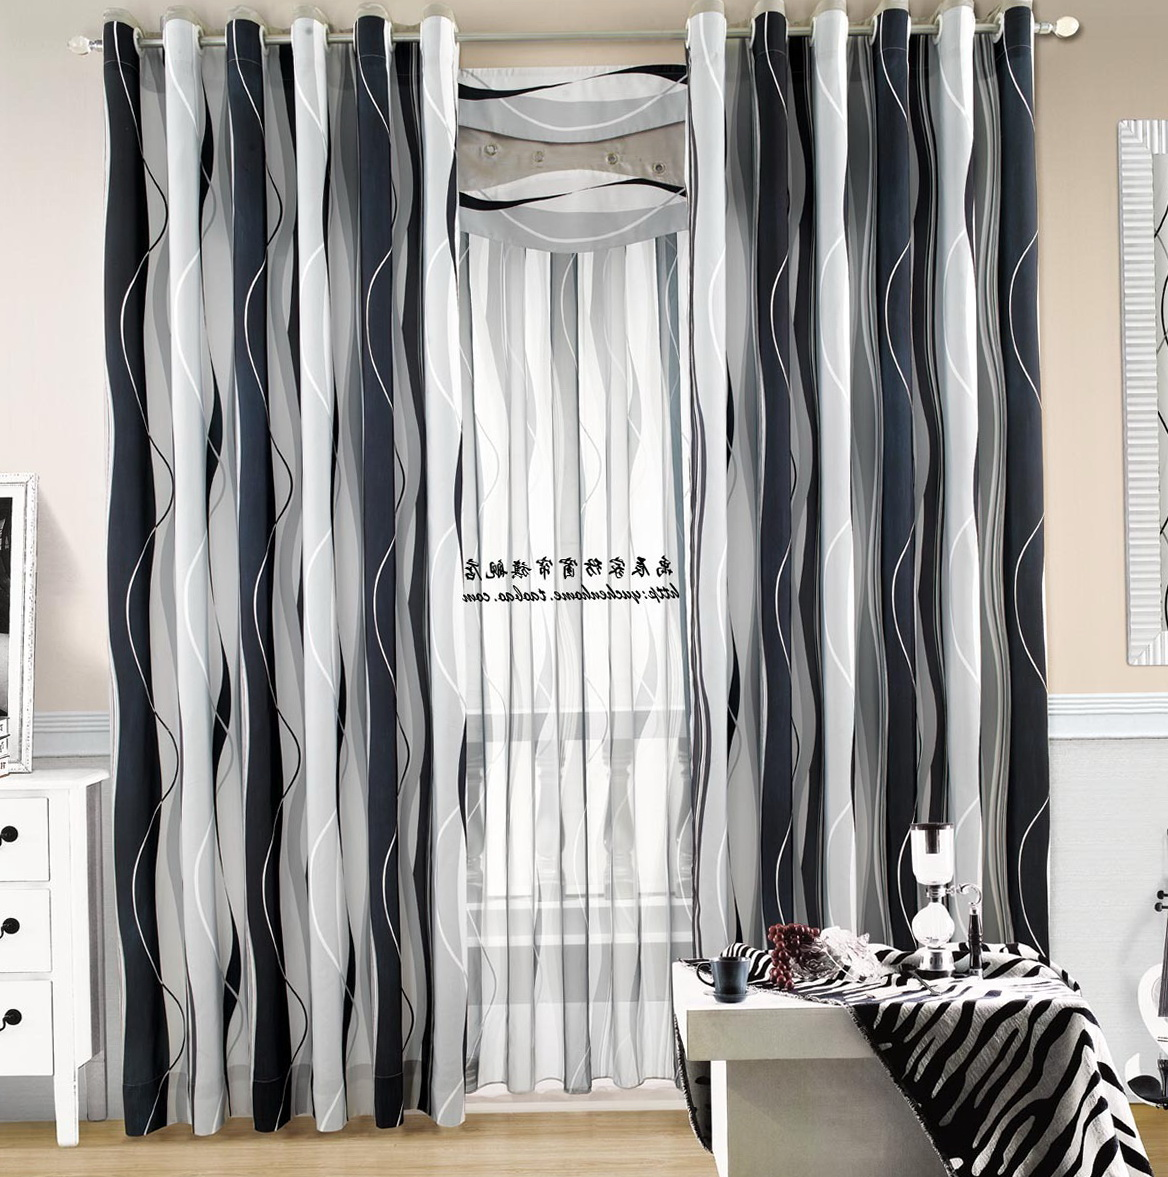 Black And White Striped Curtains Home Design Ideas